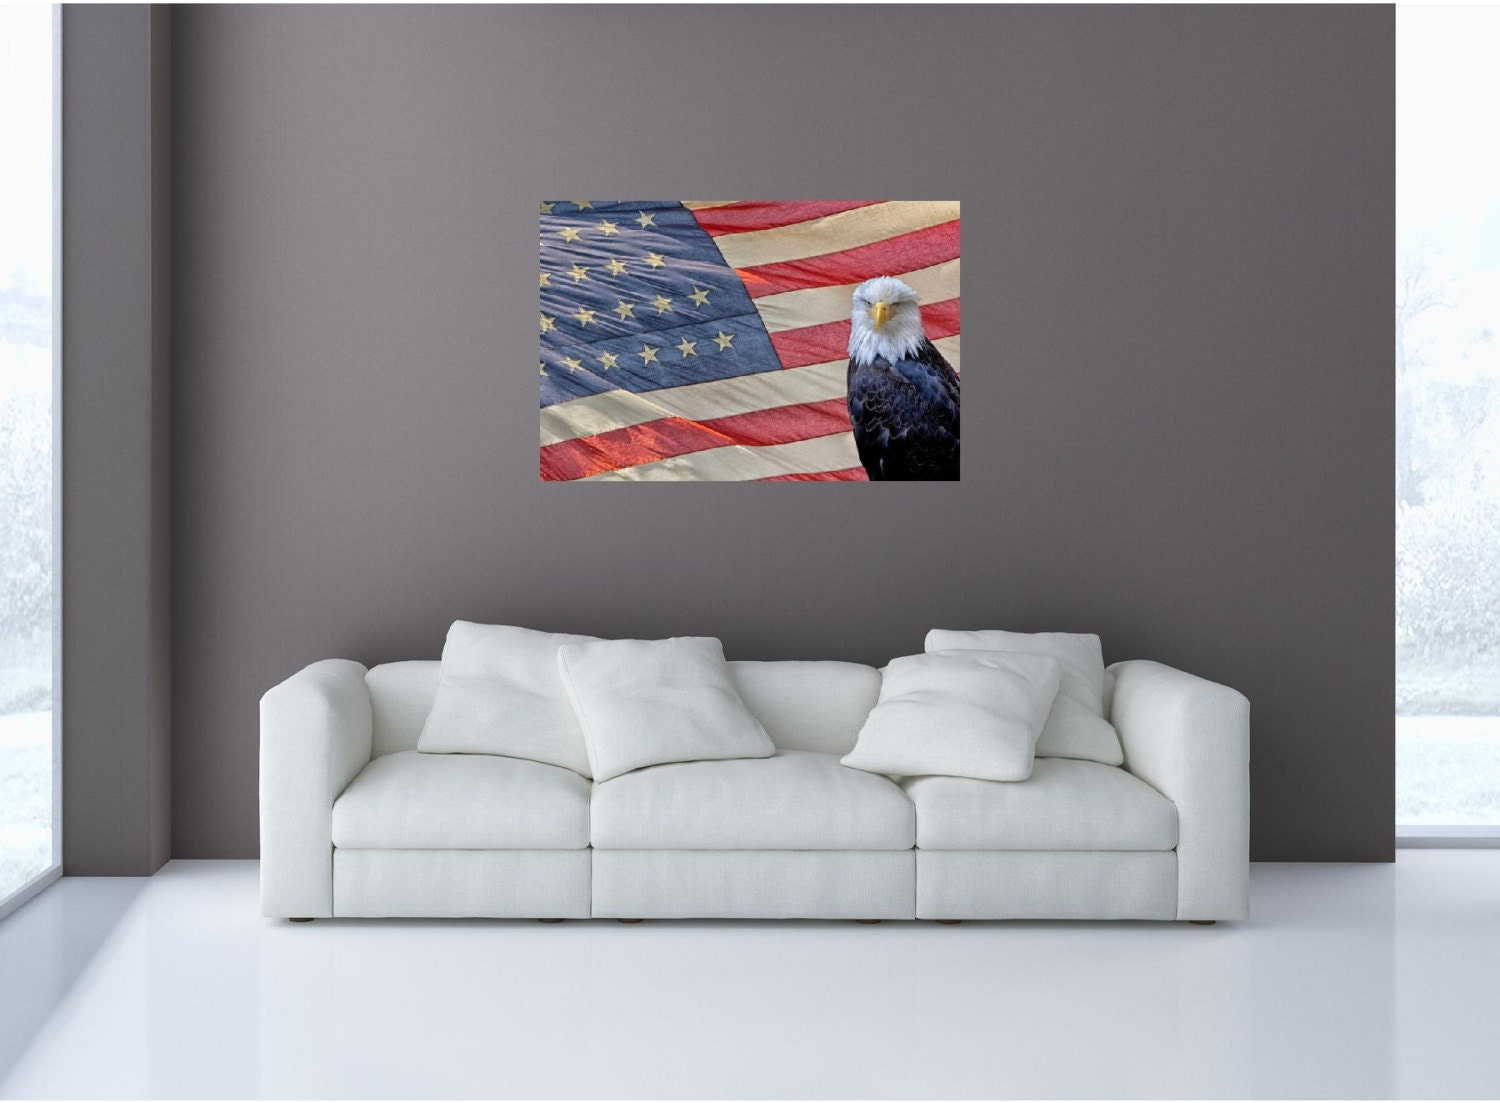 Mini mural eagle on us flag wall graphic vinyl sticker decal for American flag wall mural